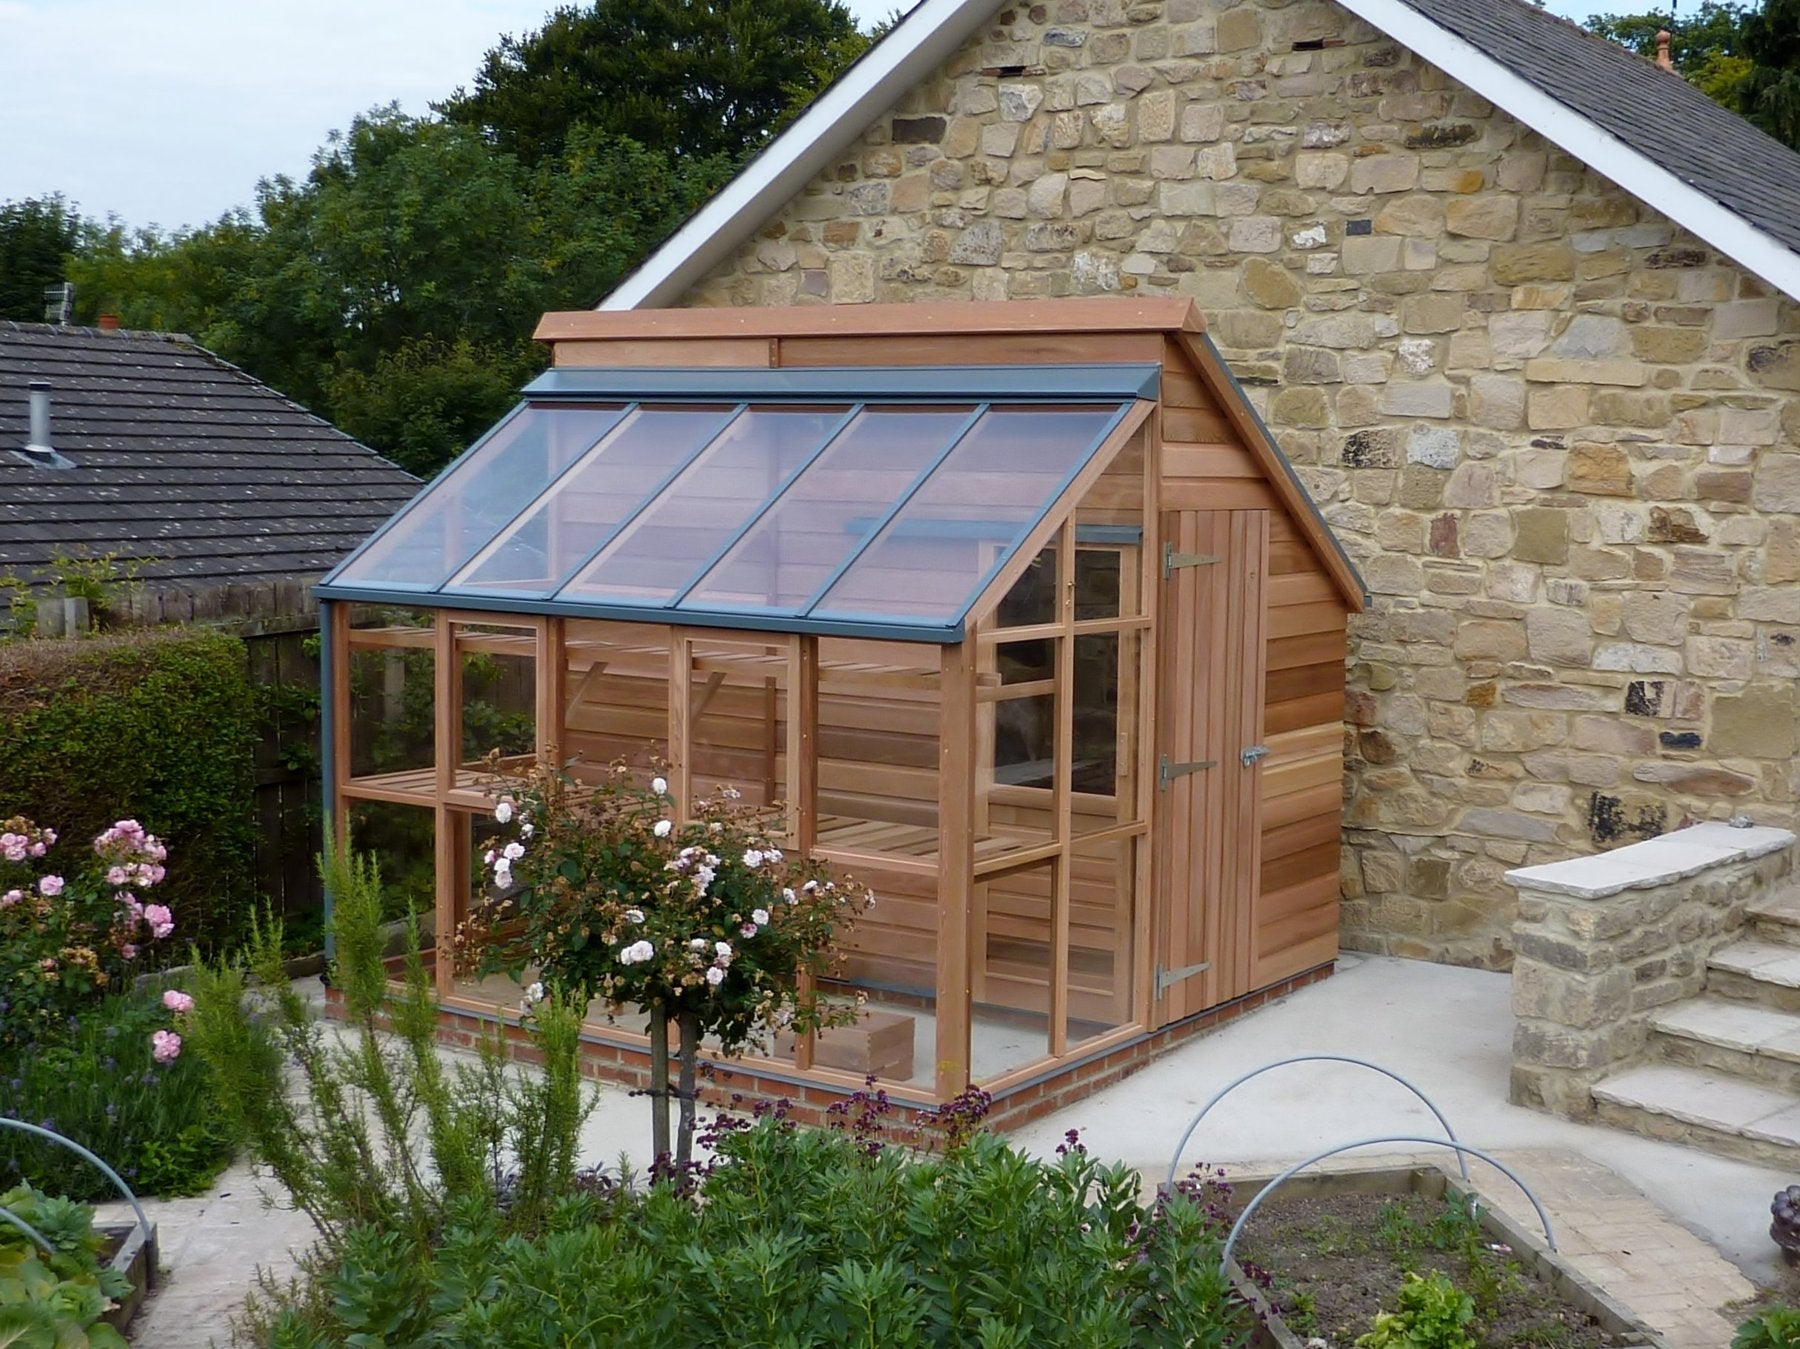 The Advantages Of A Grow & Store Greenhouse